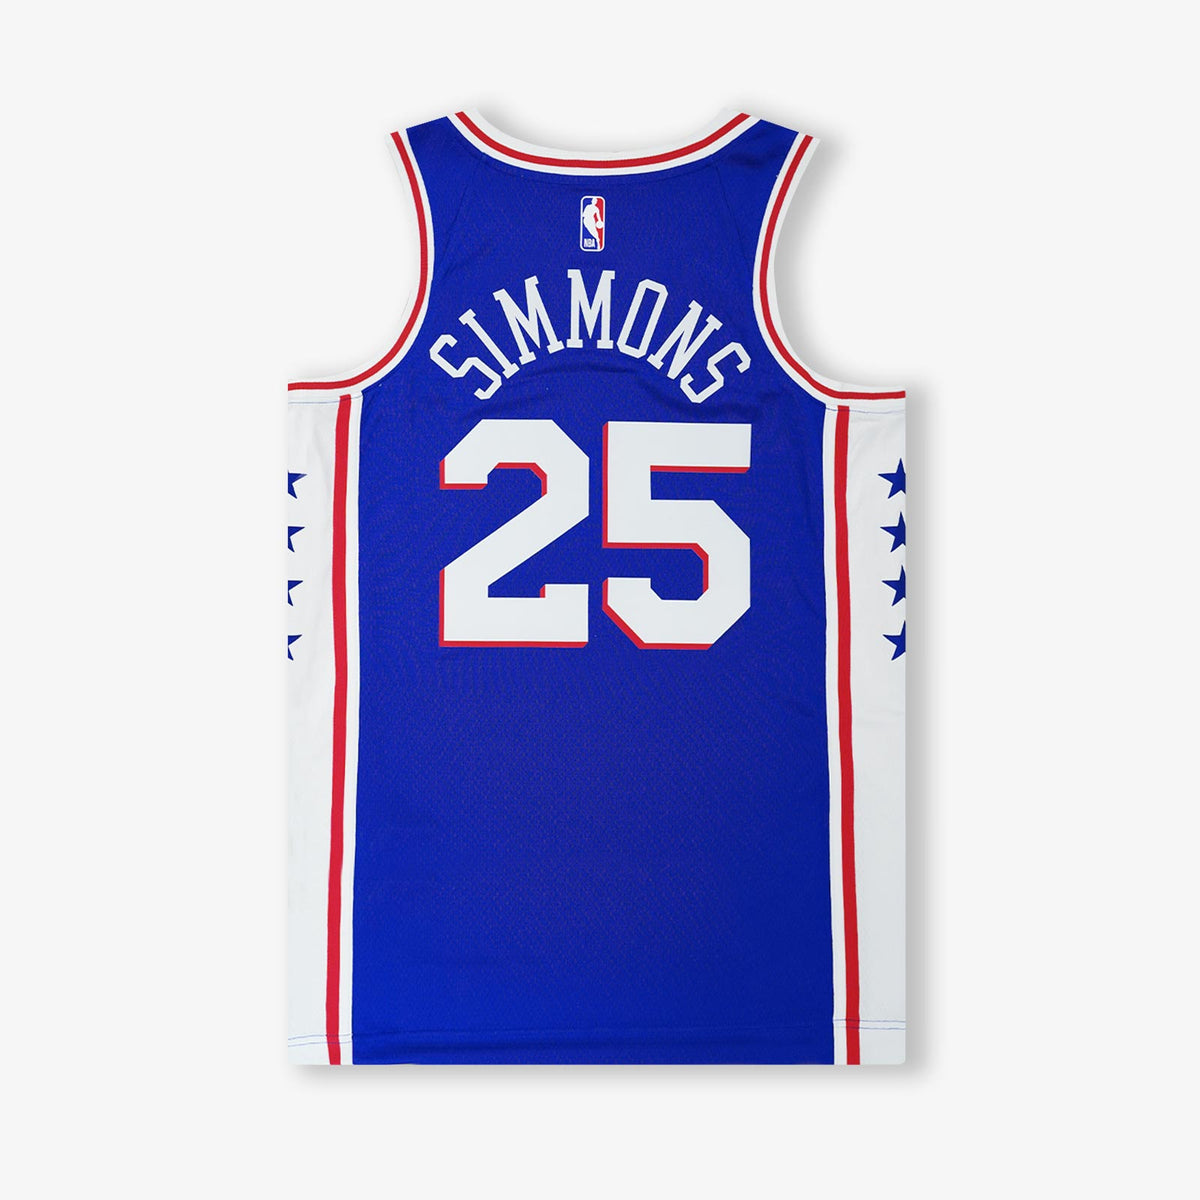 Ben Simmons Philadelphia 76ers Icon Edition Swingman Jersey - Blue